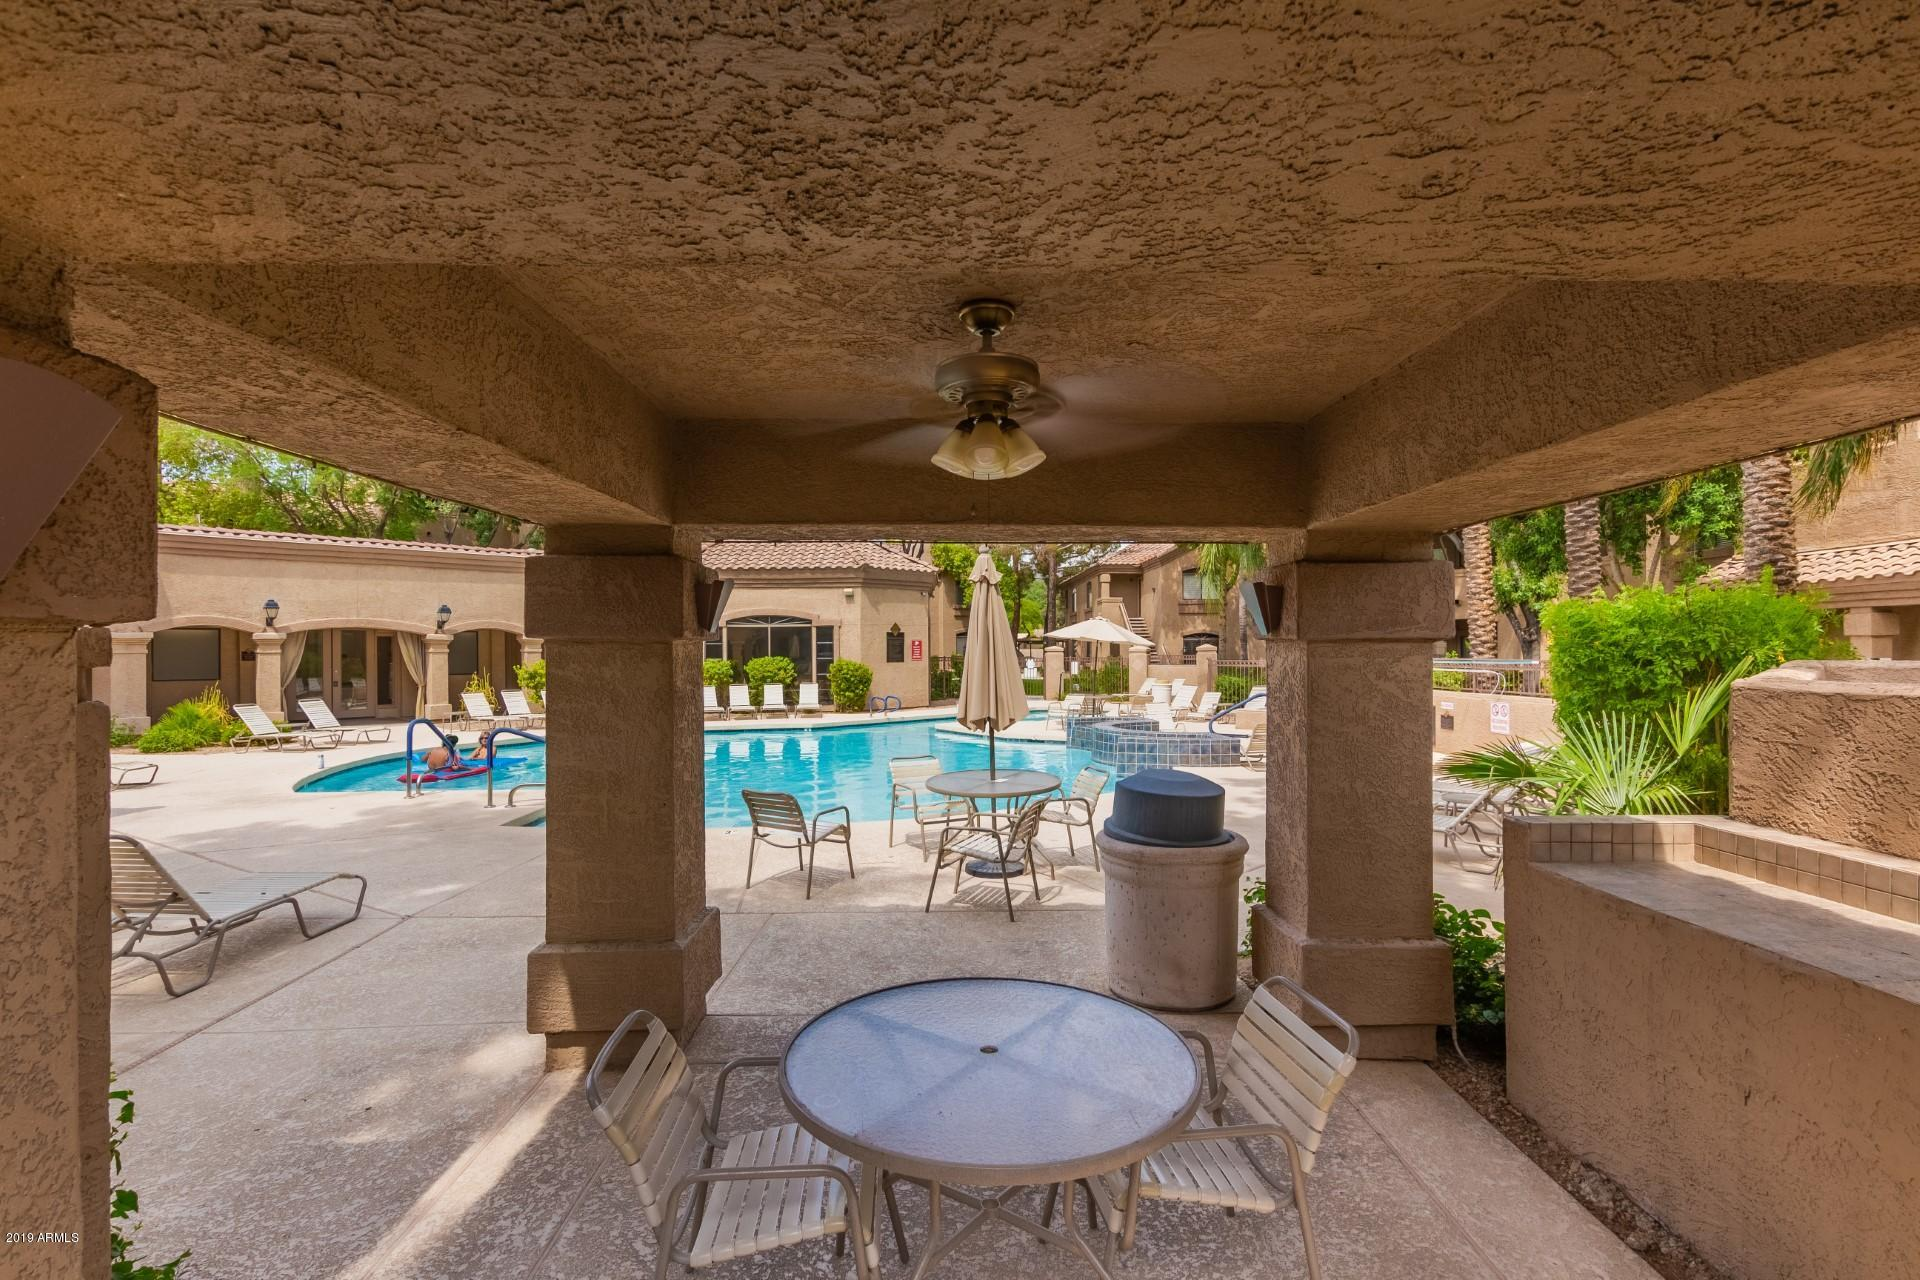 MLS 5961333 15095 N Thompson Peak Parkway Unit 2107, Scottsdale, AZ 85260 Scottsdale AZ Scottsdale Airpark Area